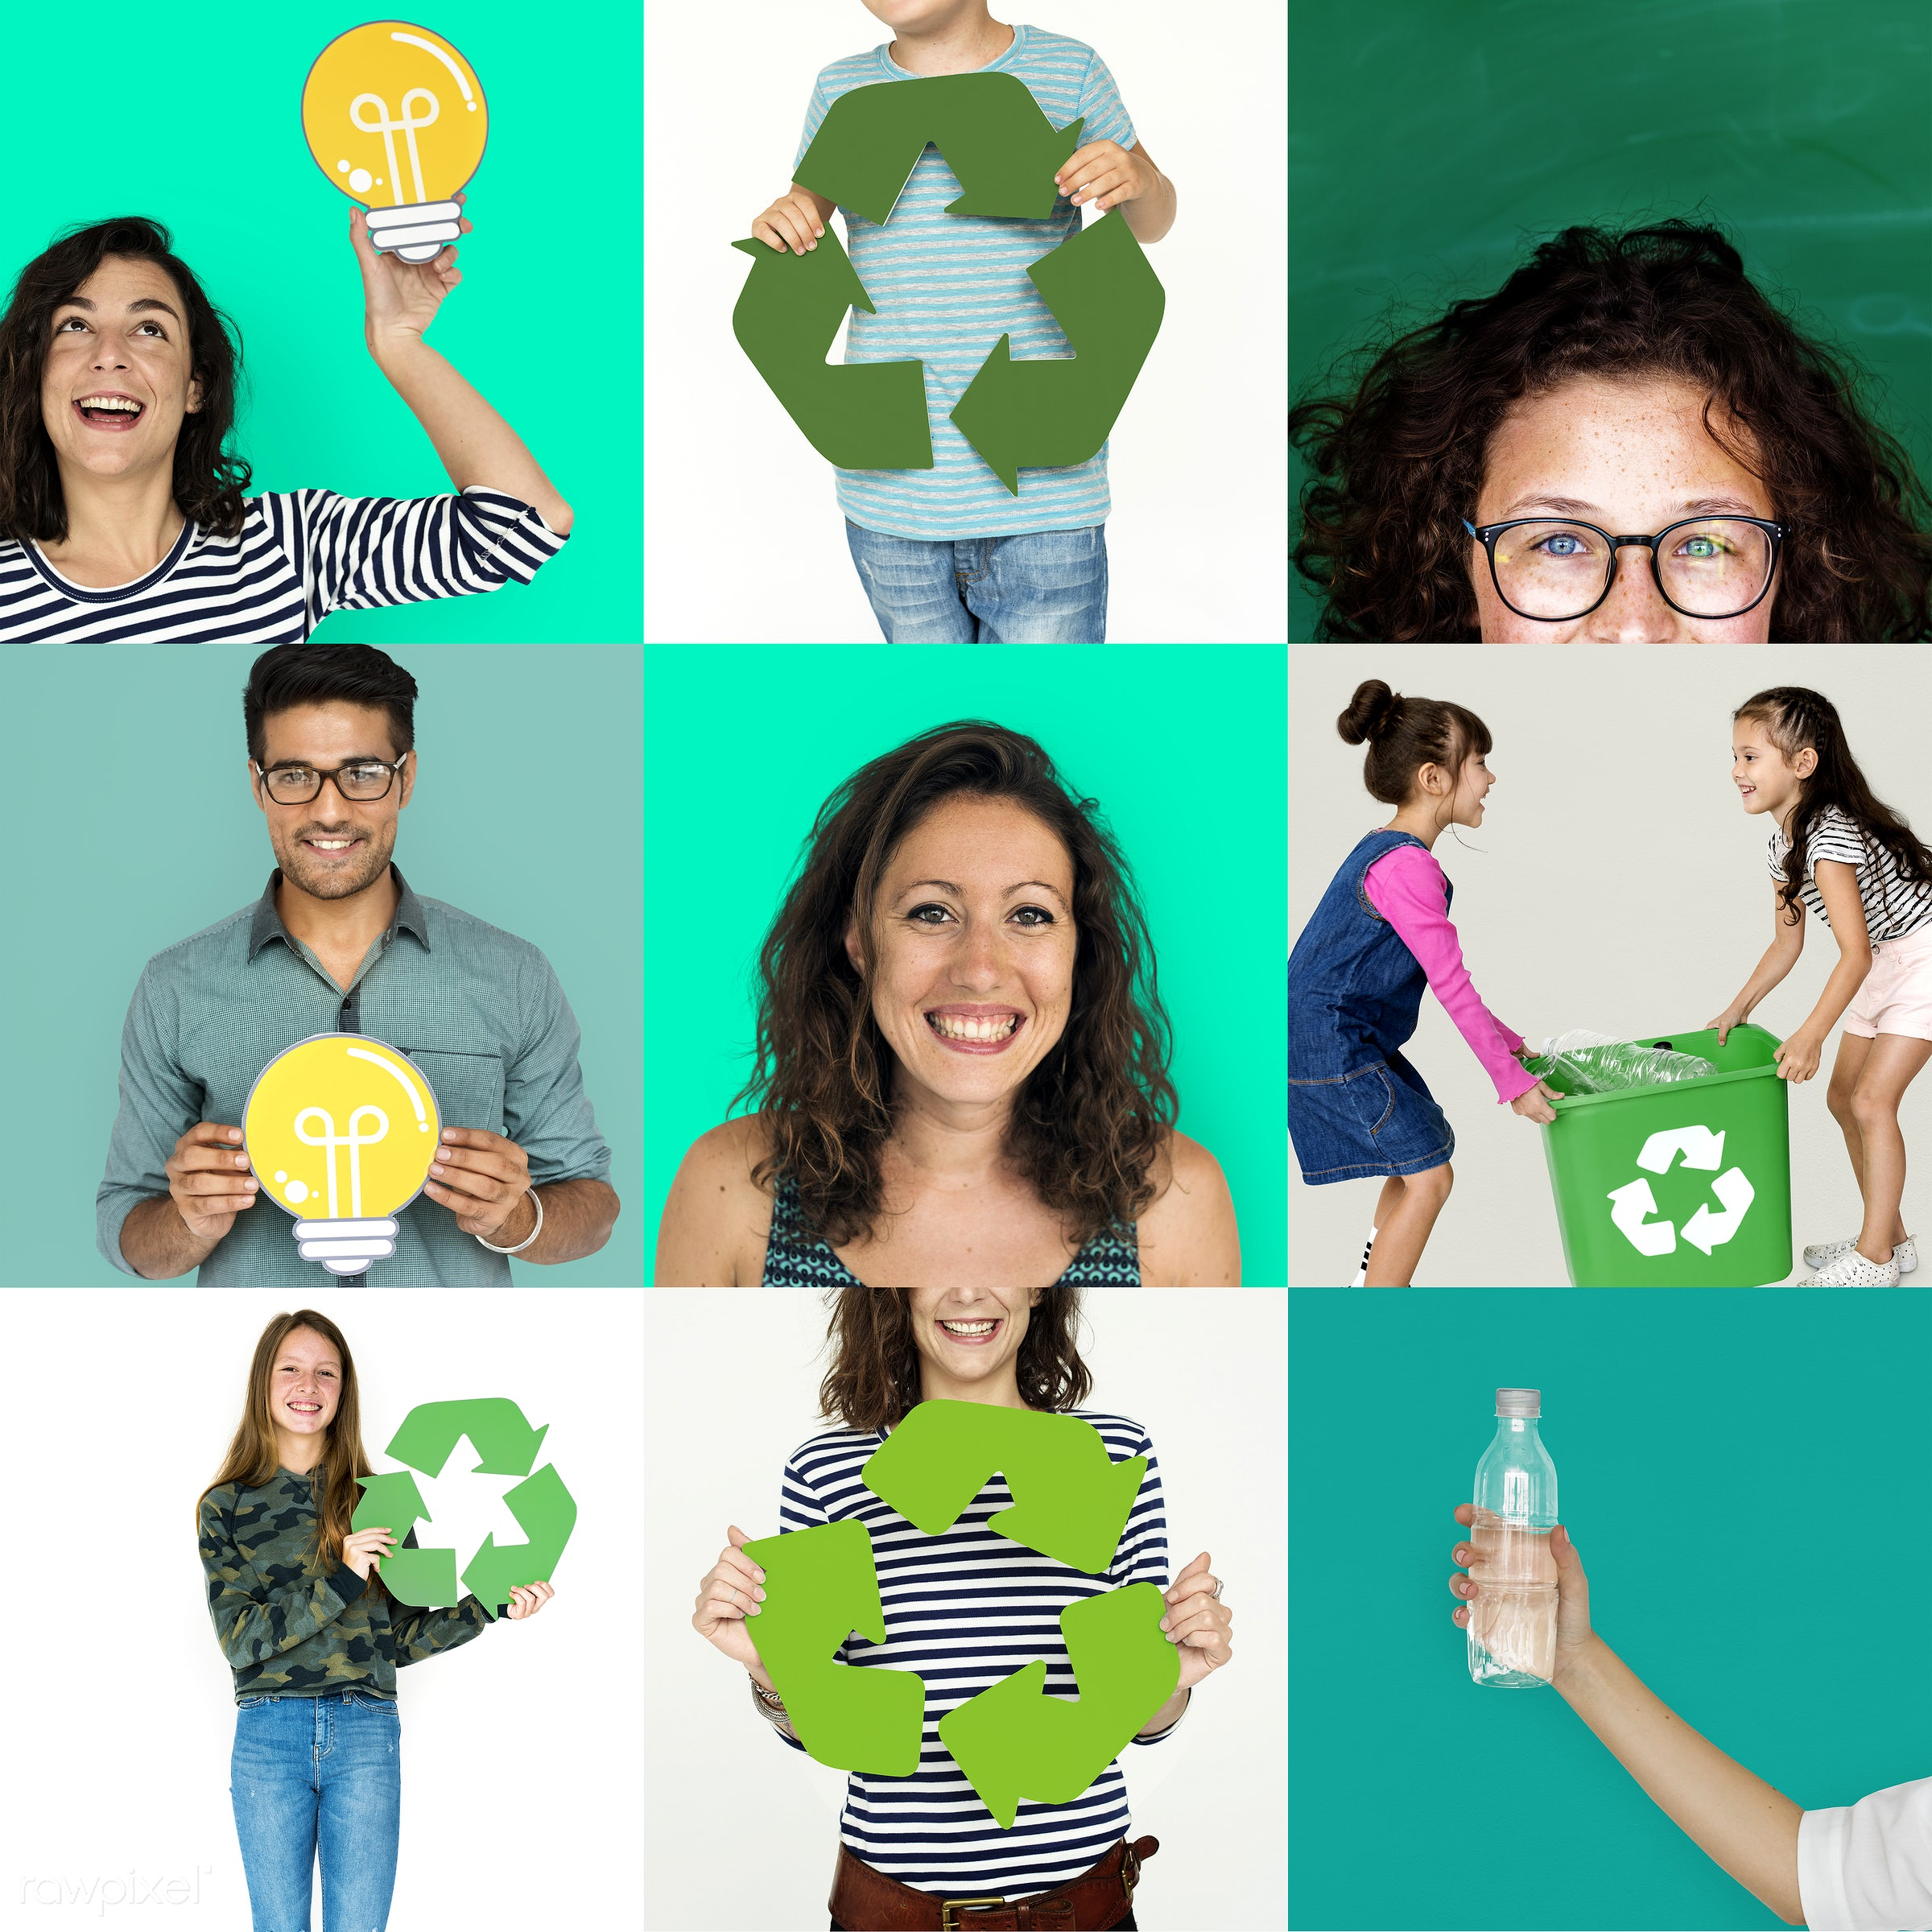 studio, idea, save, diverse, collages, environmental conservation, people, life, nature, style, conservation, woman,...